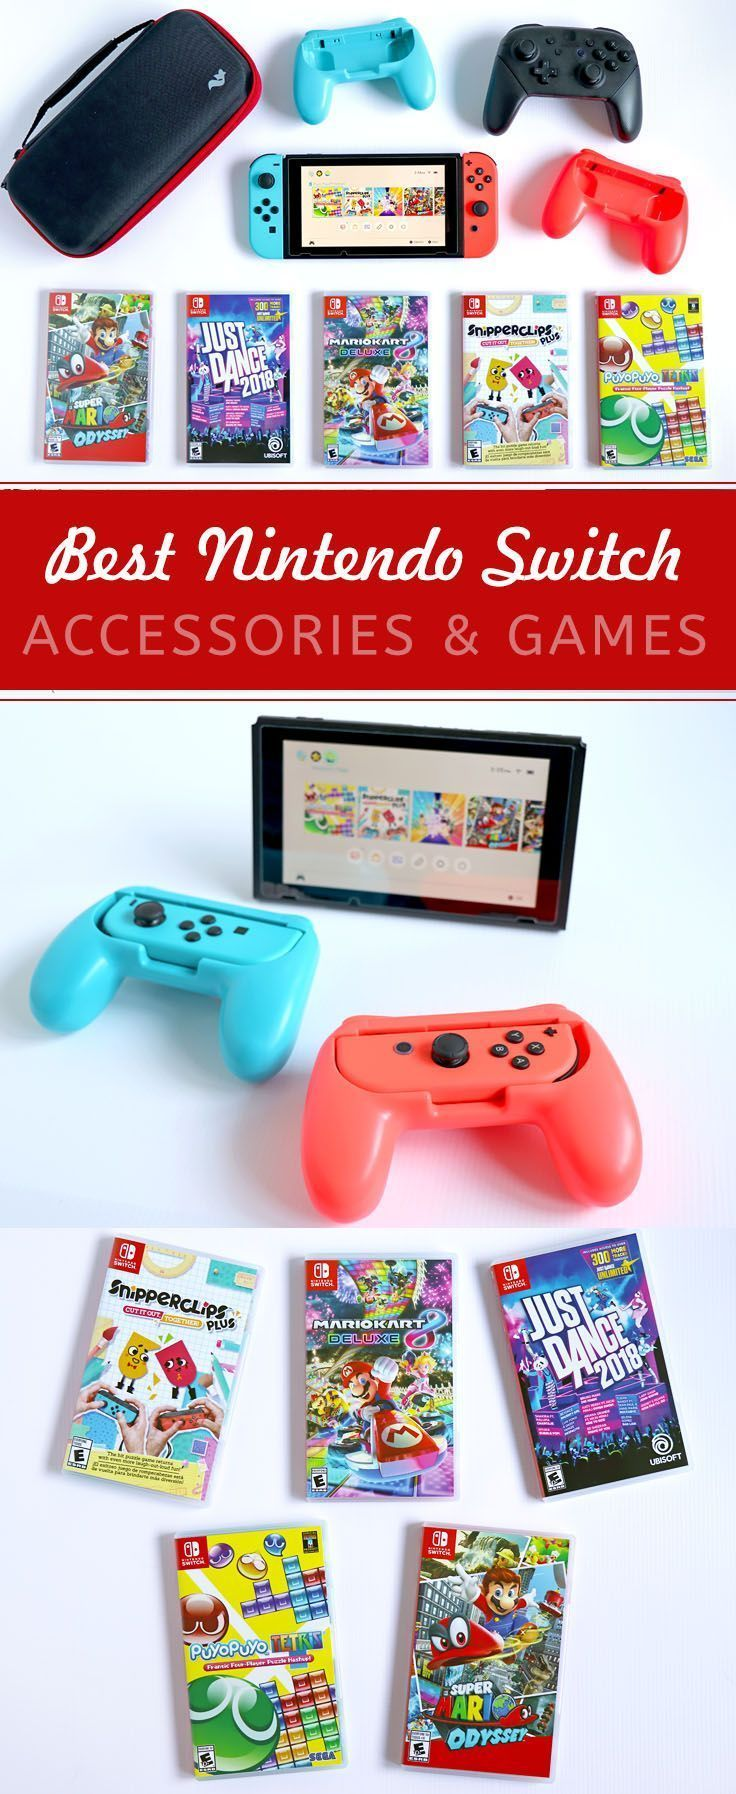 Just The Basics Getting Started W Nintendo Switch Accessories Games Switch Ninten Nintendo Switch Accessories Video Games For Kids Nintendo Switch System